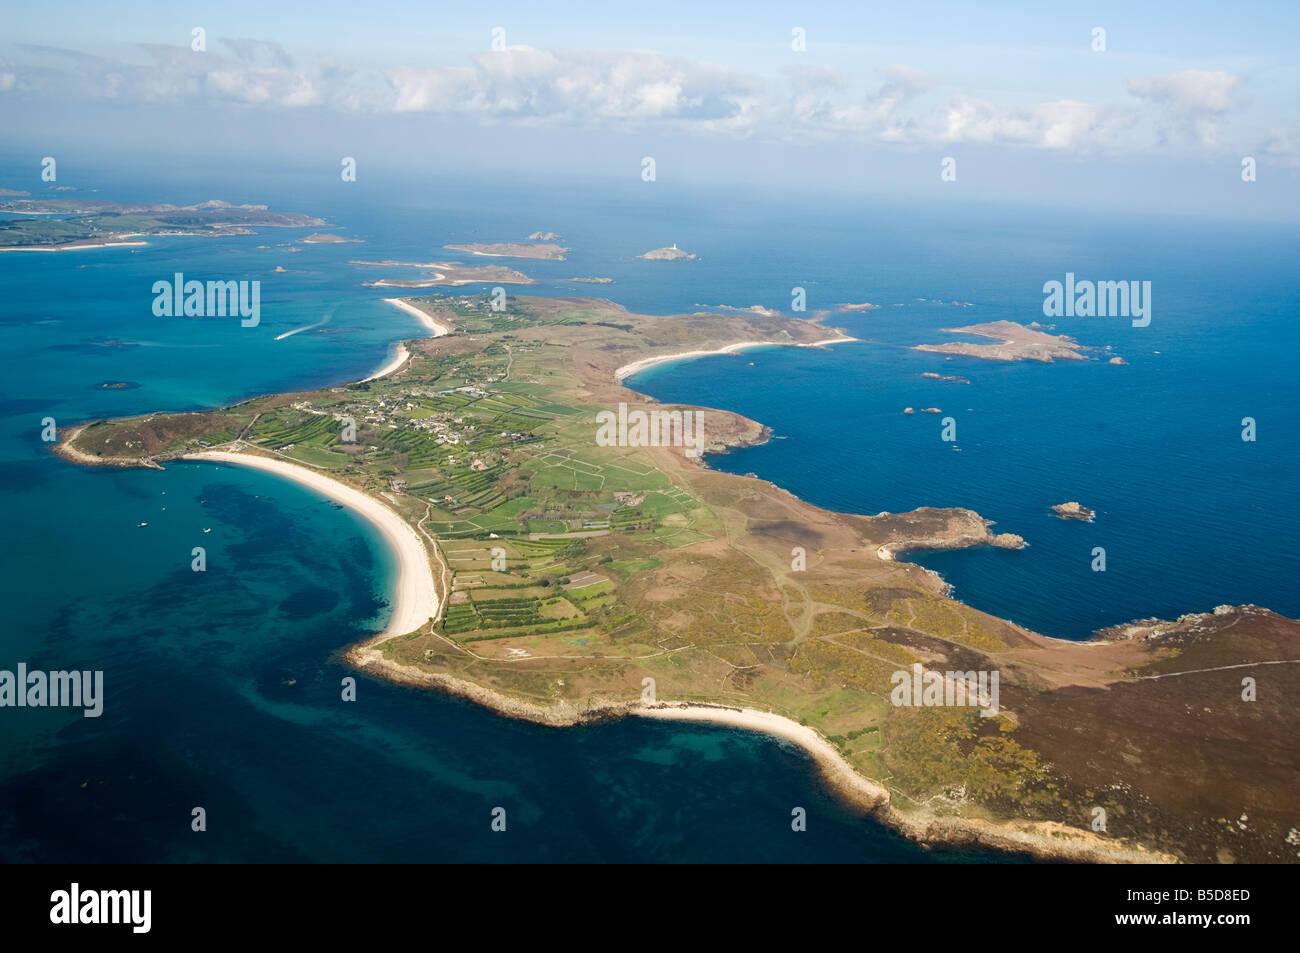 St. Martins, Isles of Scilly, off Cornwall, , Europe - Stock Image